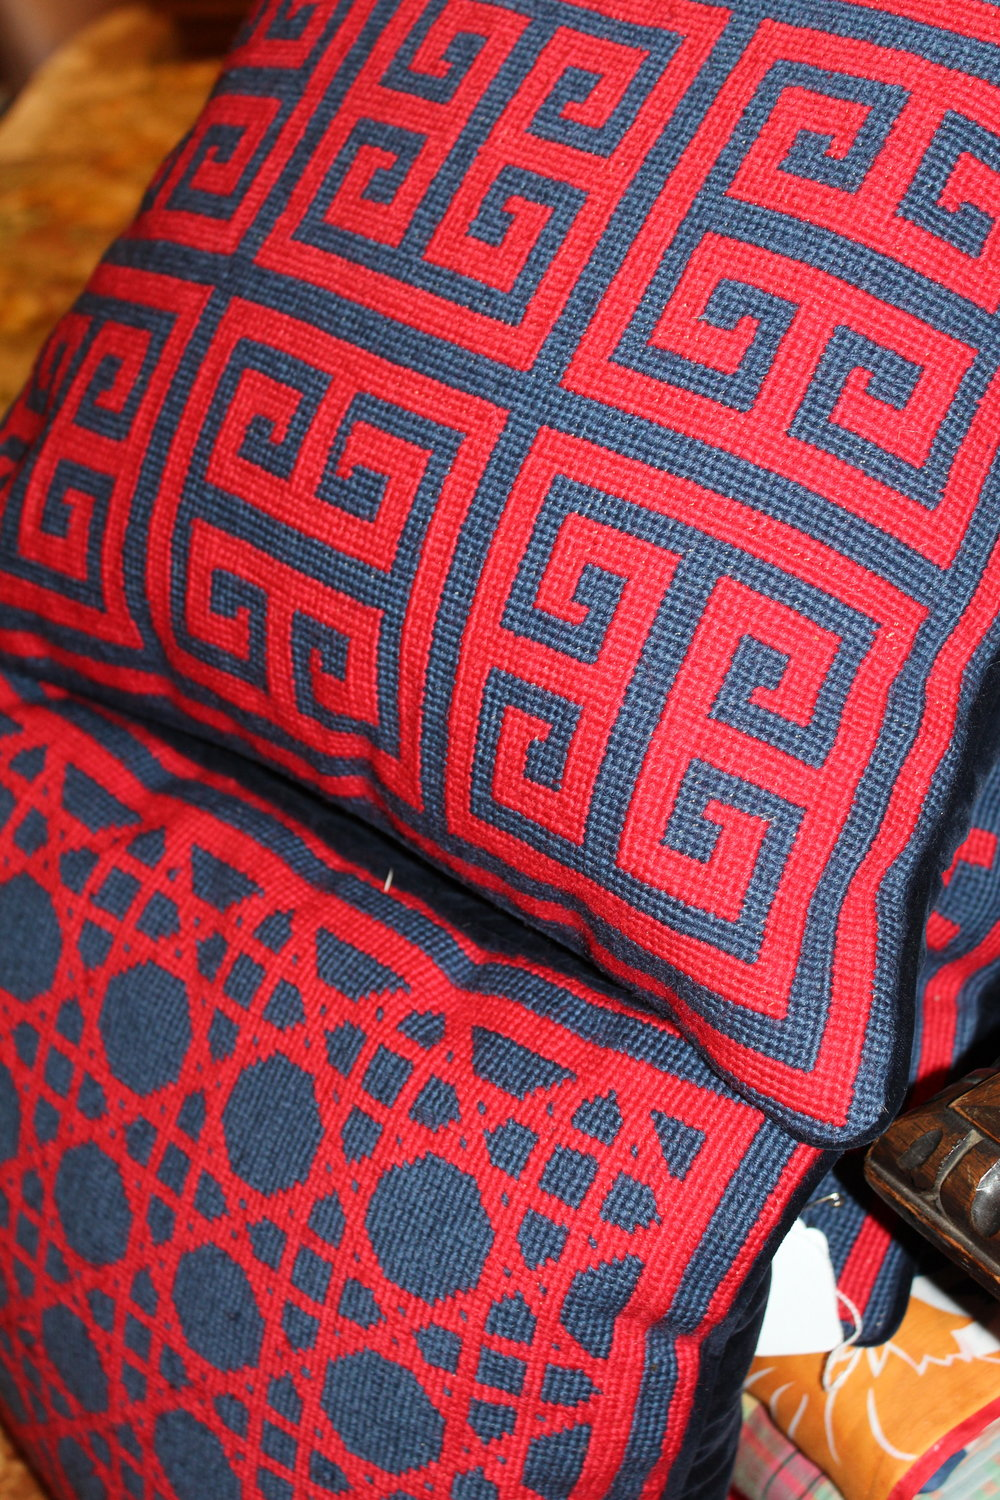 Vintage Red & Blue Pattern Pillows